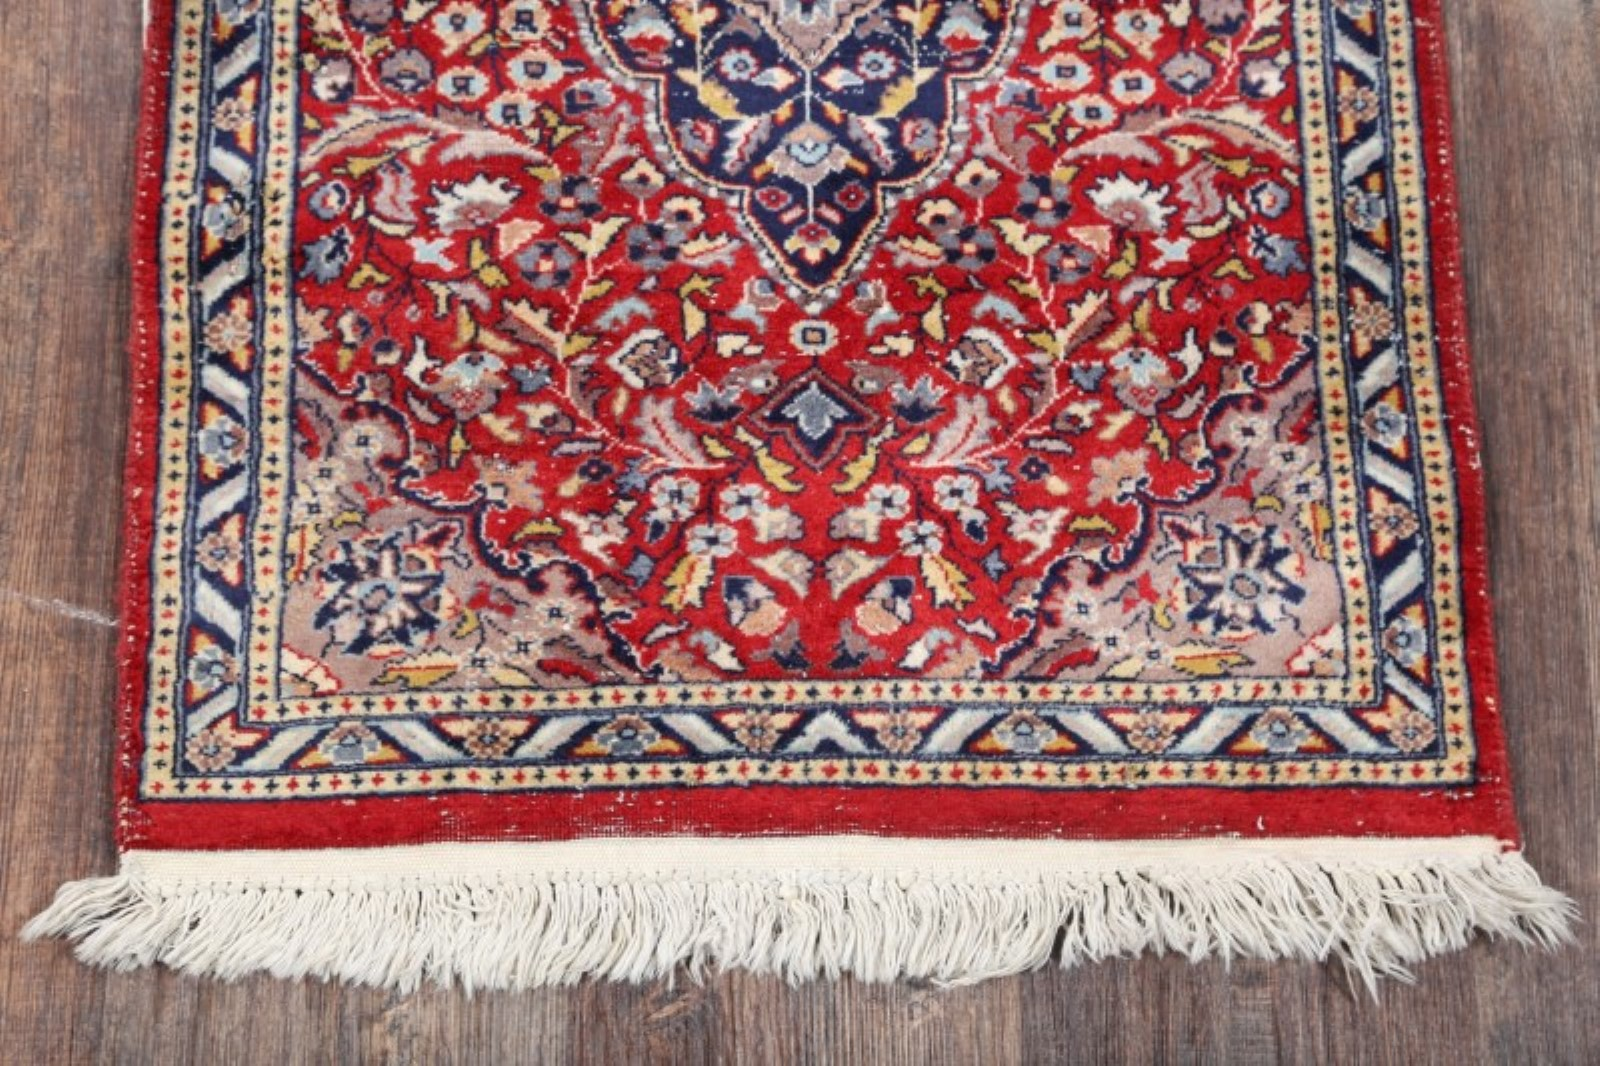 Cheap Kilim Rugs Melbourne · Pottery Barn Kilim Rug